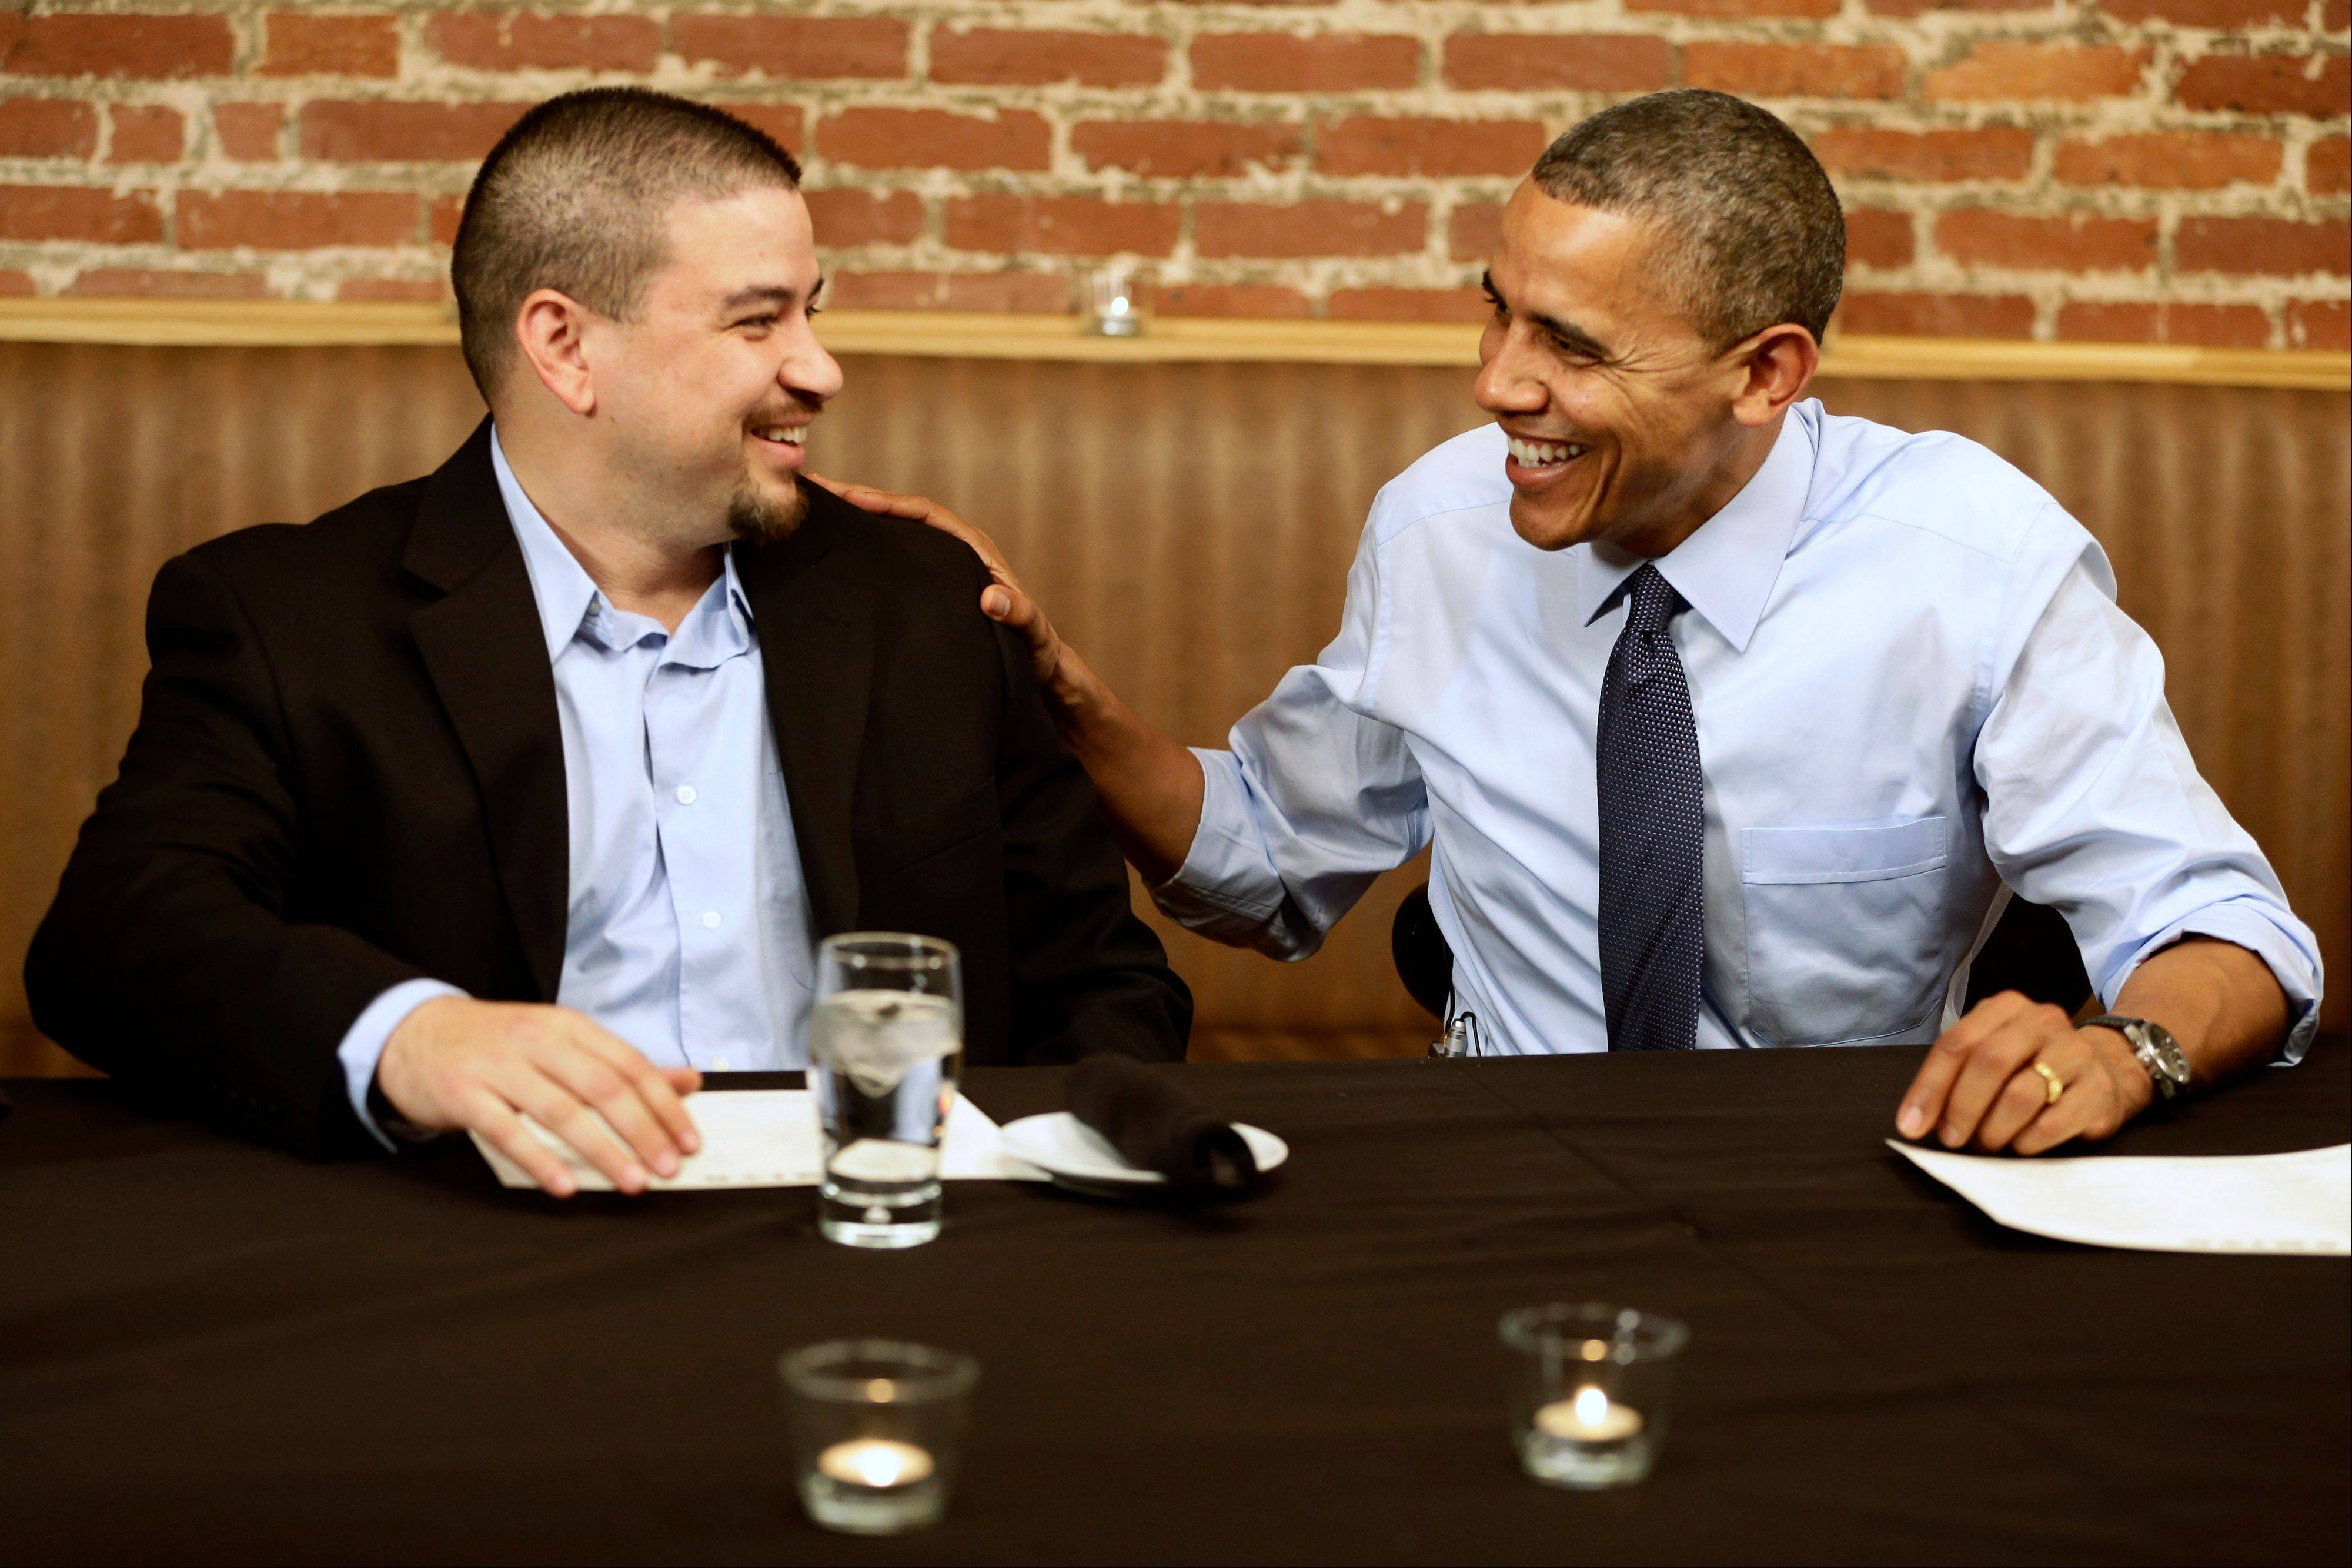 President Barack Obama meets with Mario Orosa, left, of North Canton, Ohio, and other winners of the �Dinner With Barack� campaign fundraising contest Friday at Smith Commons Dining Room and Public House in Washington.